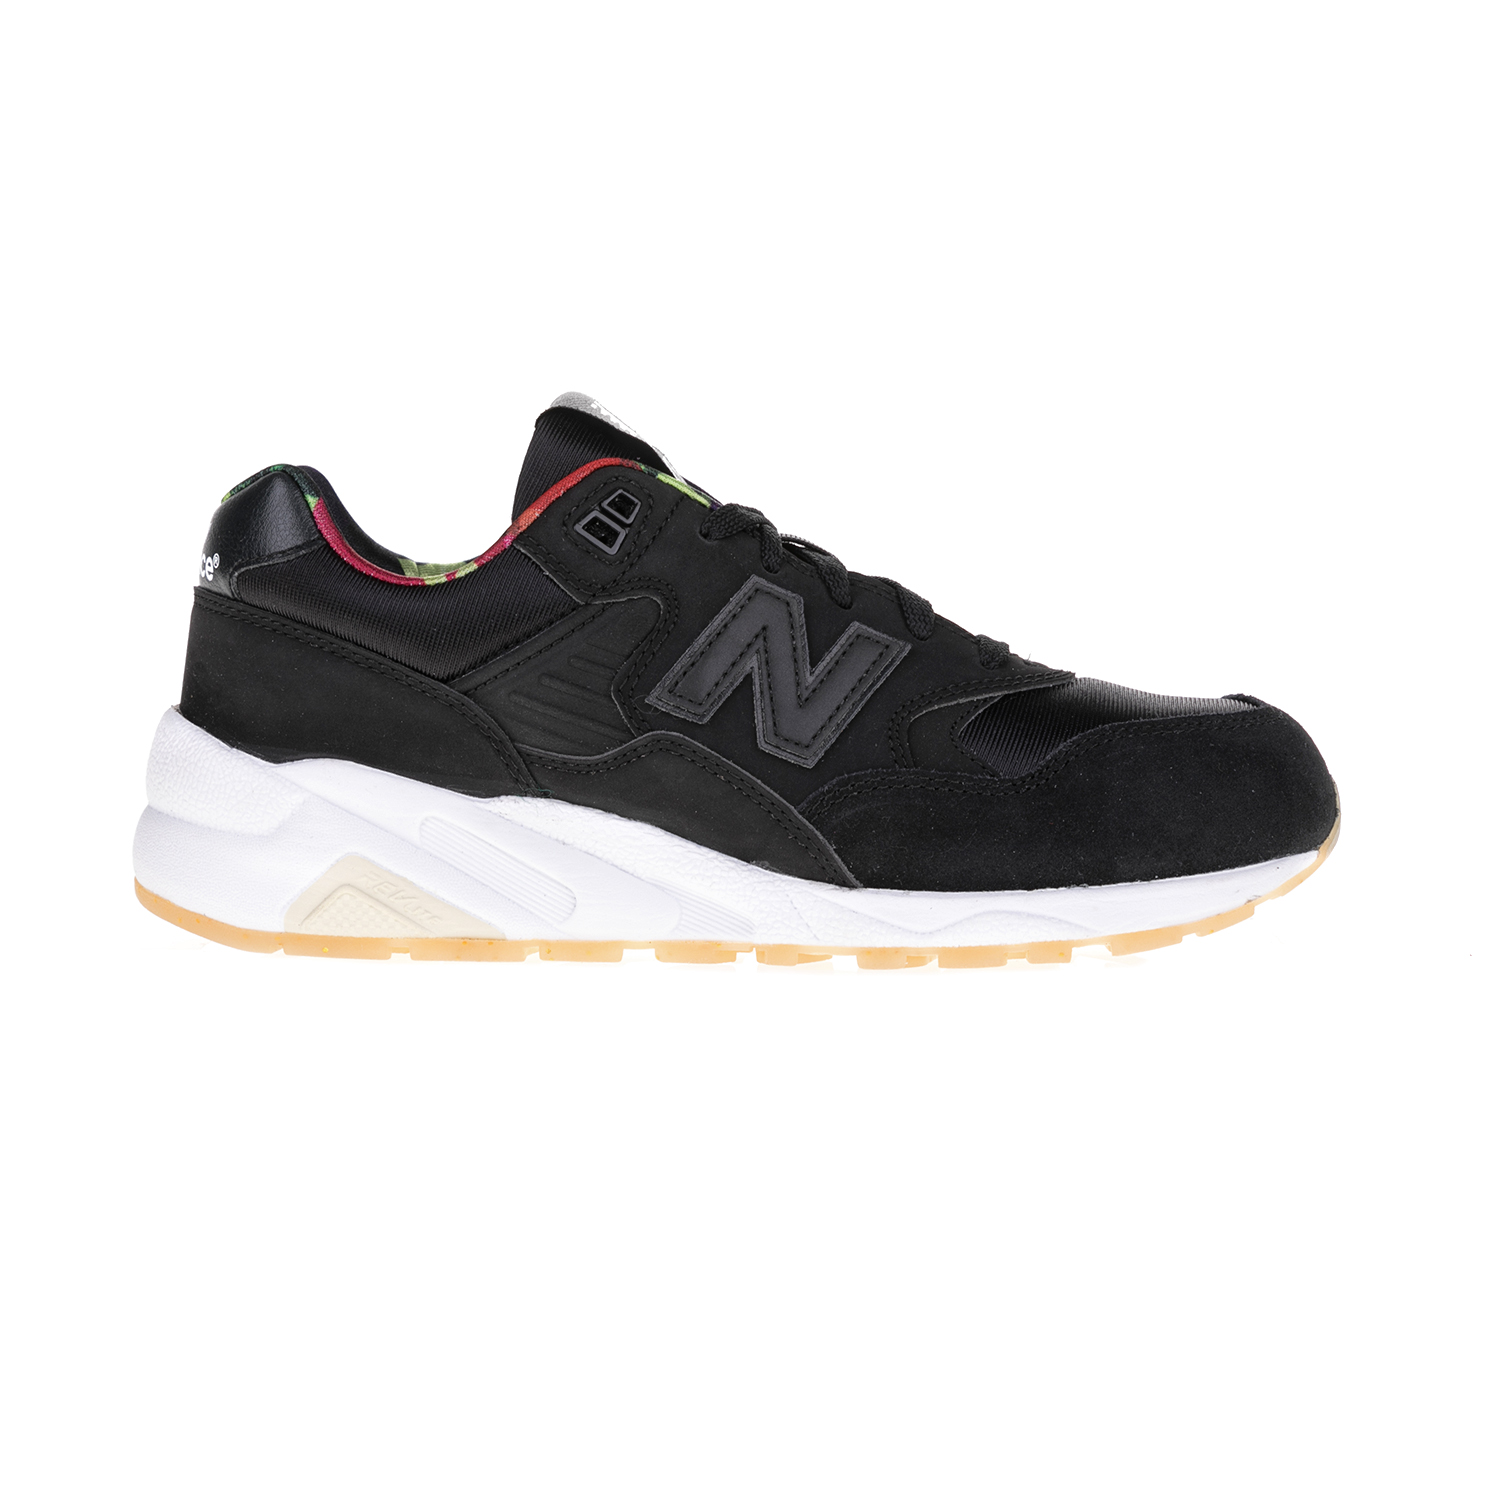 NEW BALANCE – Γυναικεία sneakers WRT580RK NEW BALANCE μαύρα